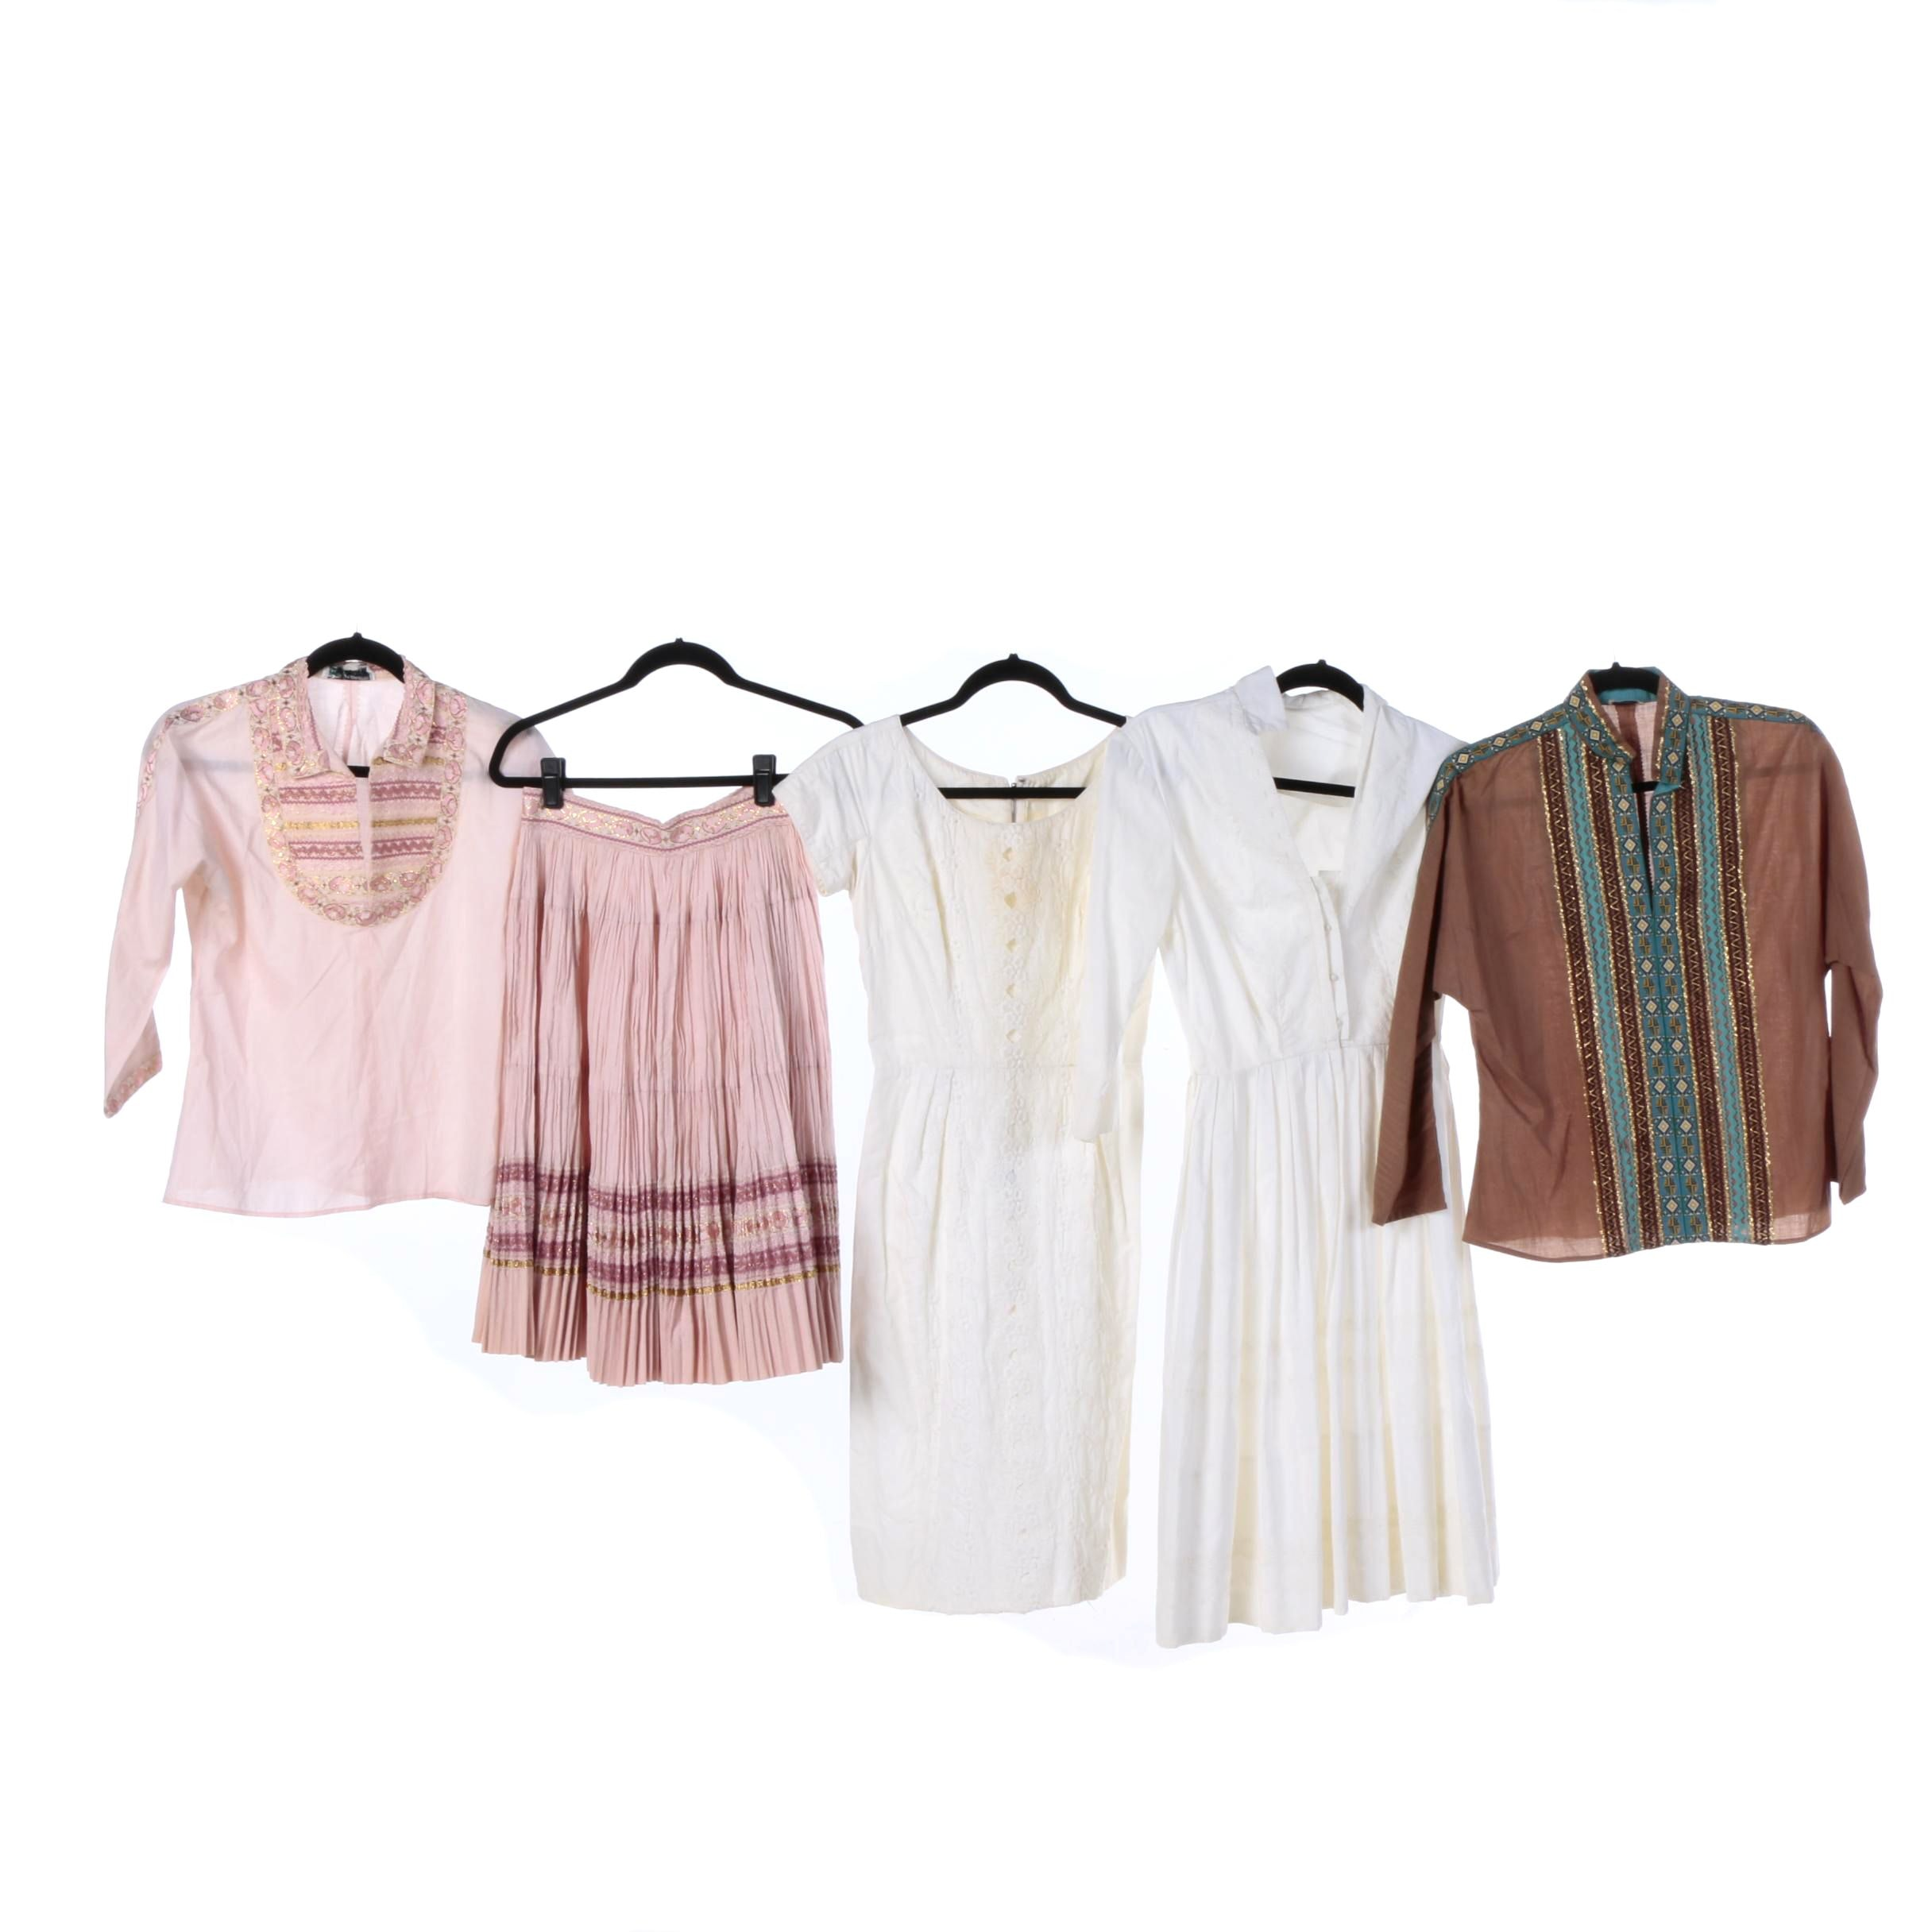 Mid Century Linen and Cotton Summer Dresses Including Lace, Embroidered